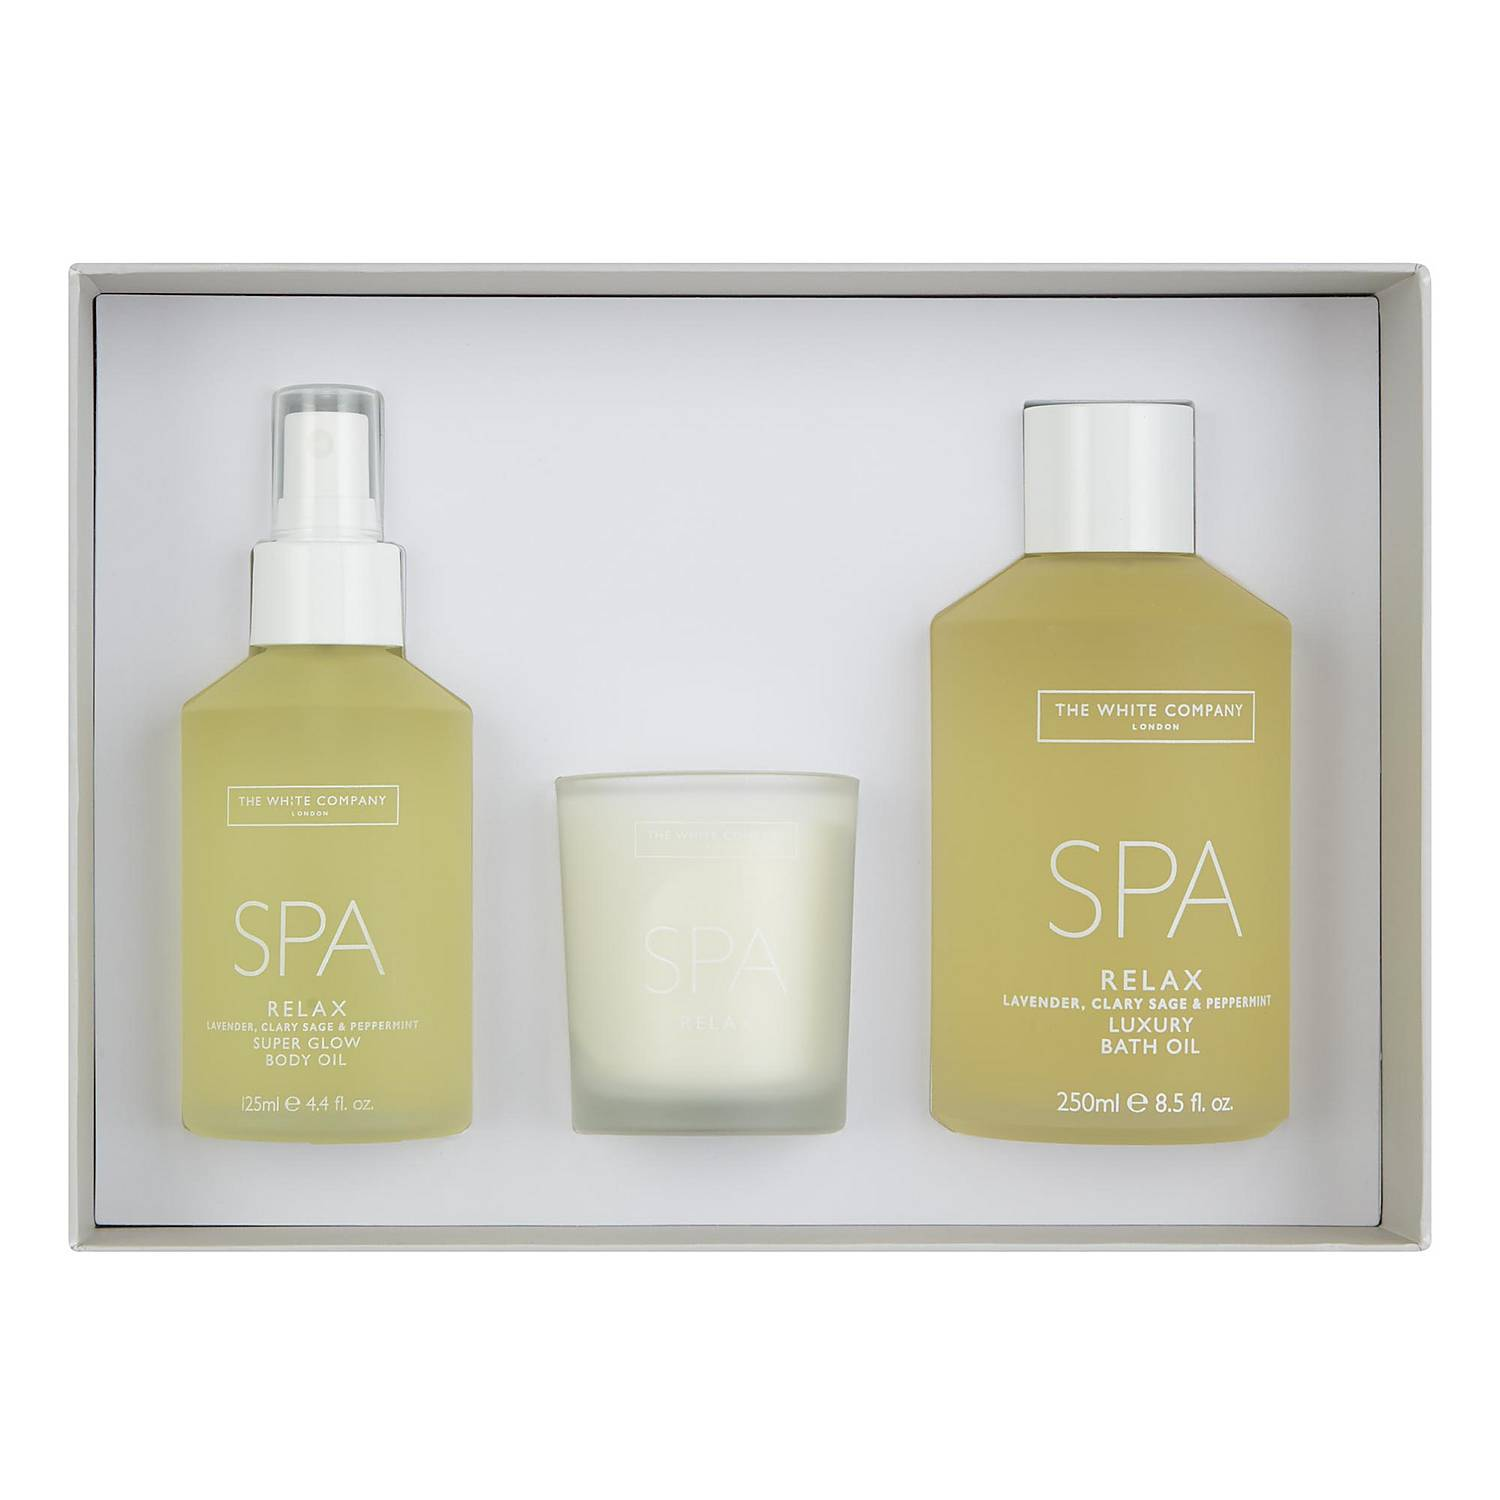 THE WHITE COMPANY Relax Spa Gift Set